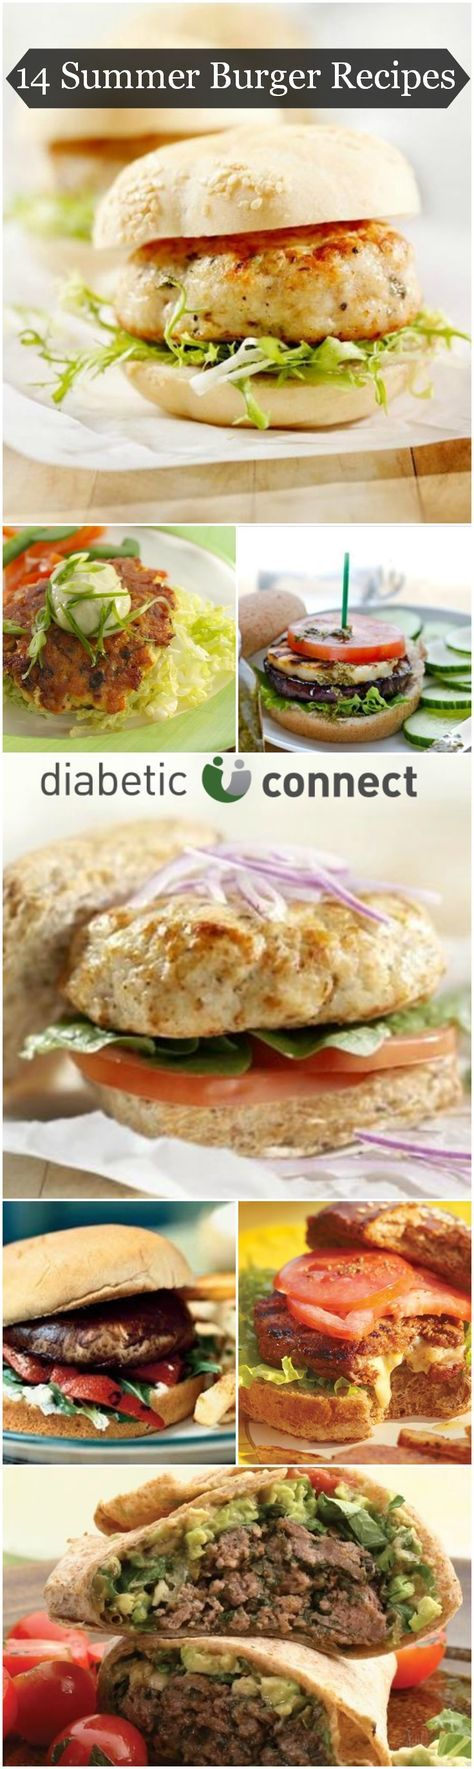 Summer is here and that means it's time to break out the grill. Here's a collection of mouth-watering burger recipes that will help you kick off your summer BBQ. you'll find diabetic-friendly chicken cordon bleu burgers, Southwestern burger wraps, and more. diabeticconnect.com #diabetesdiet #diabeticfriendly